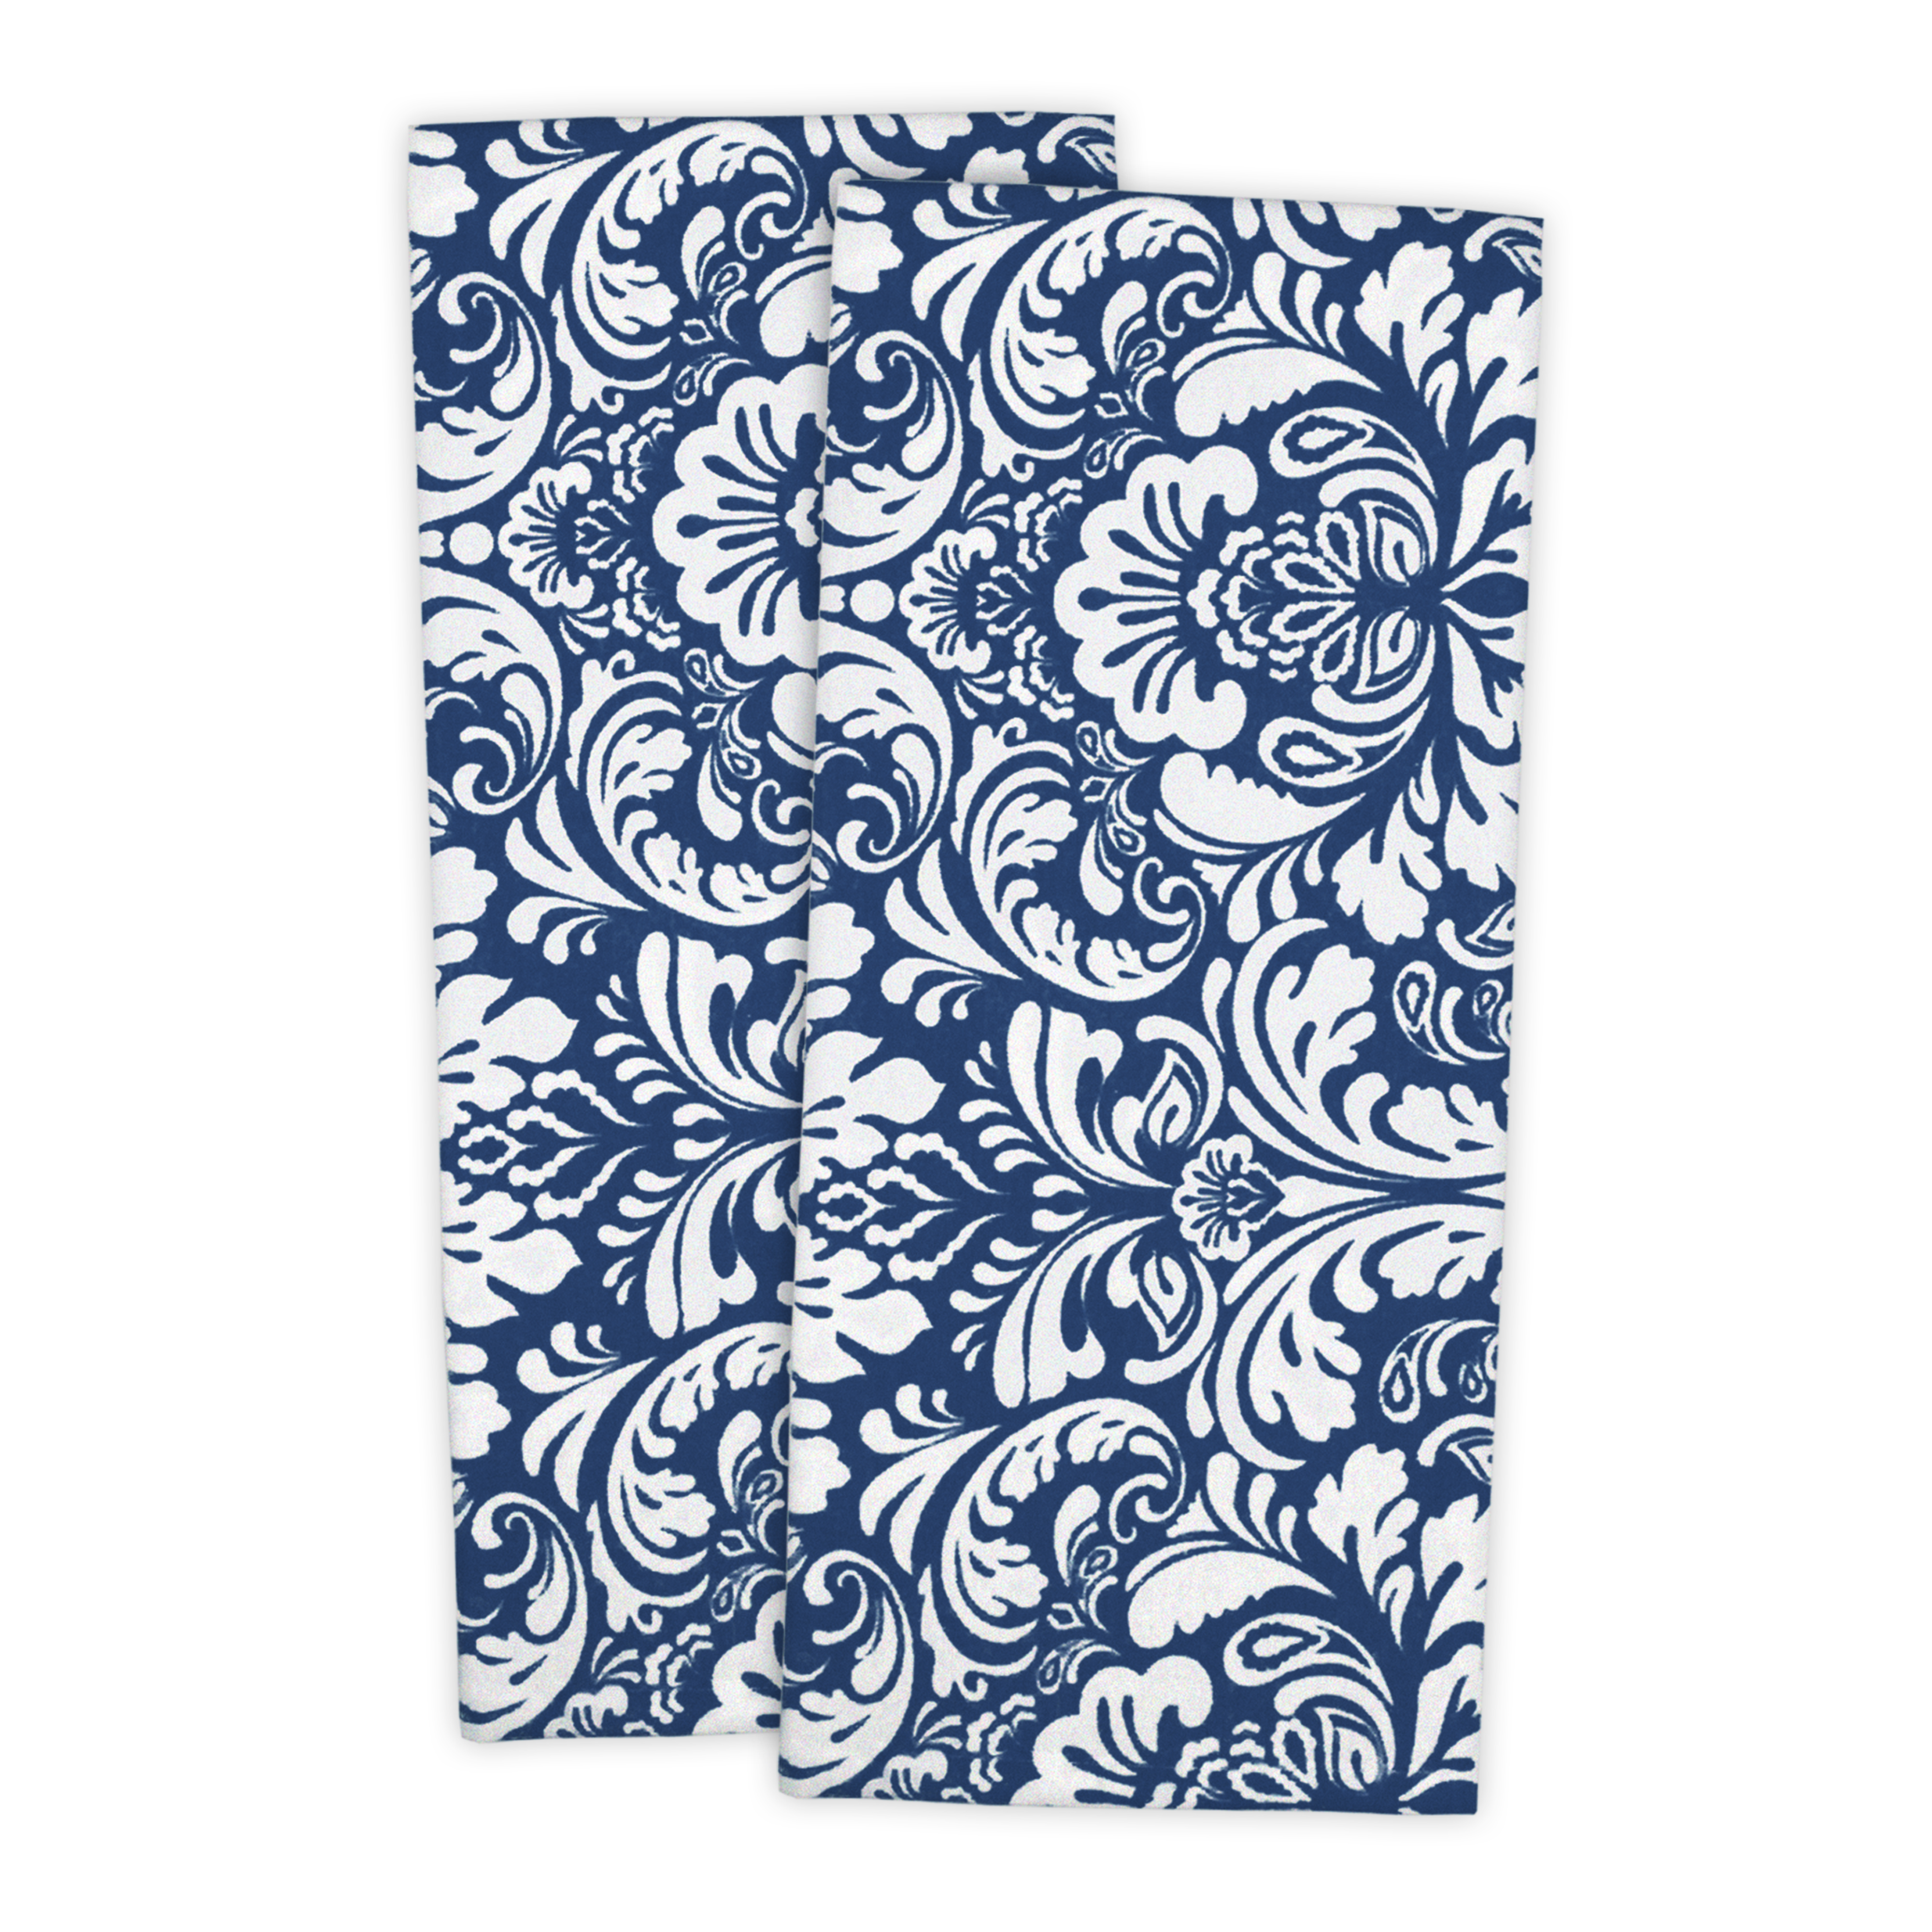 "Design Imports Damask Dishtowel Set, Set of 2, 28""x18"", 100% Cotton, Multiple Colors"